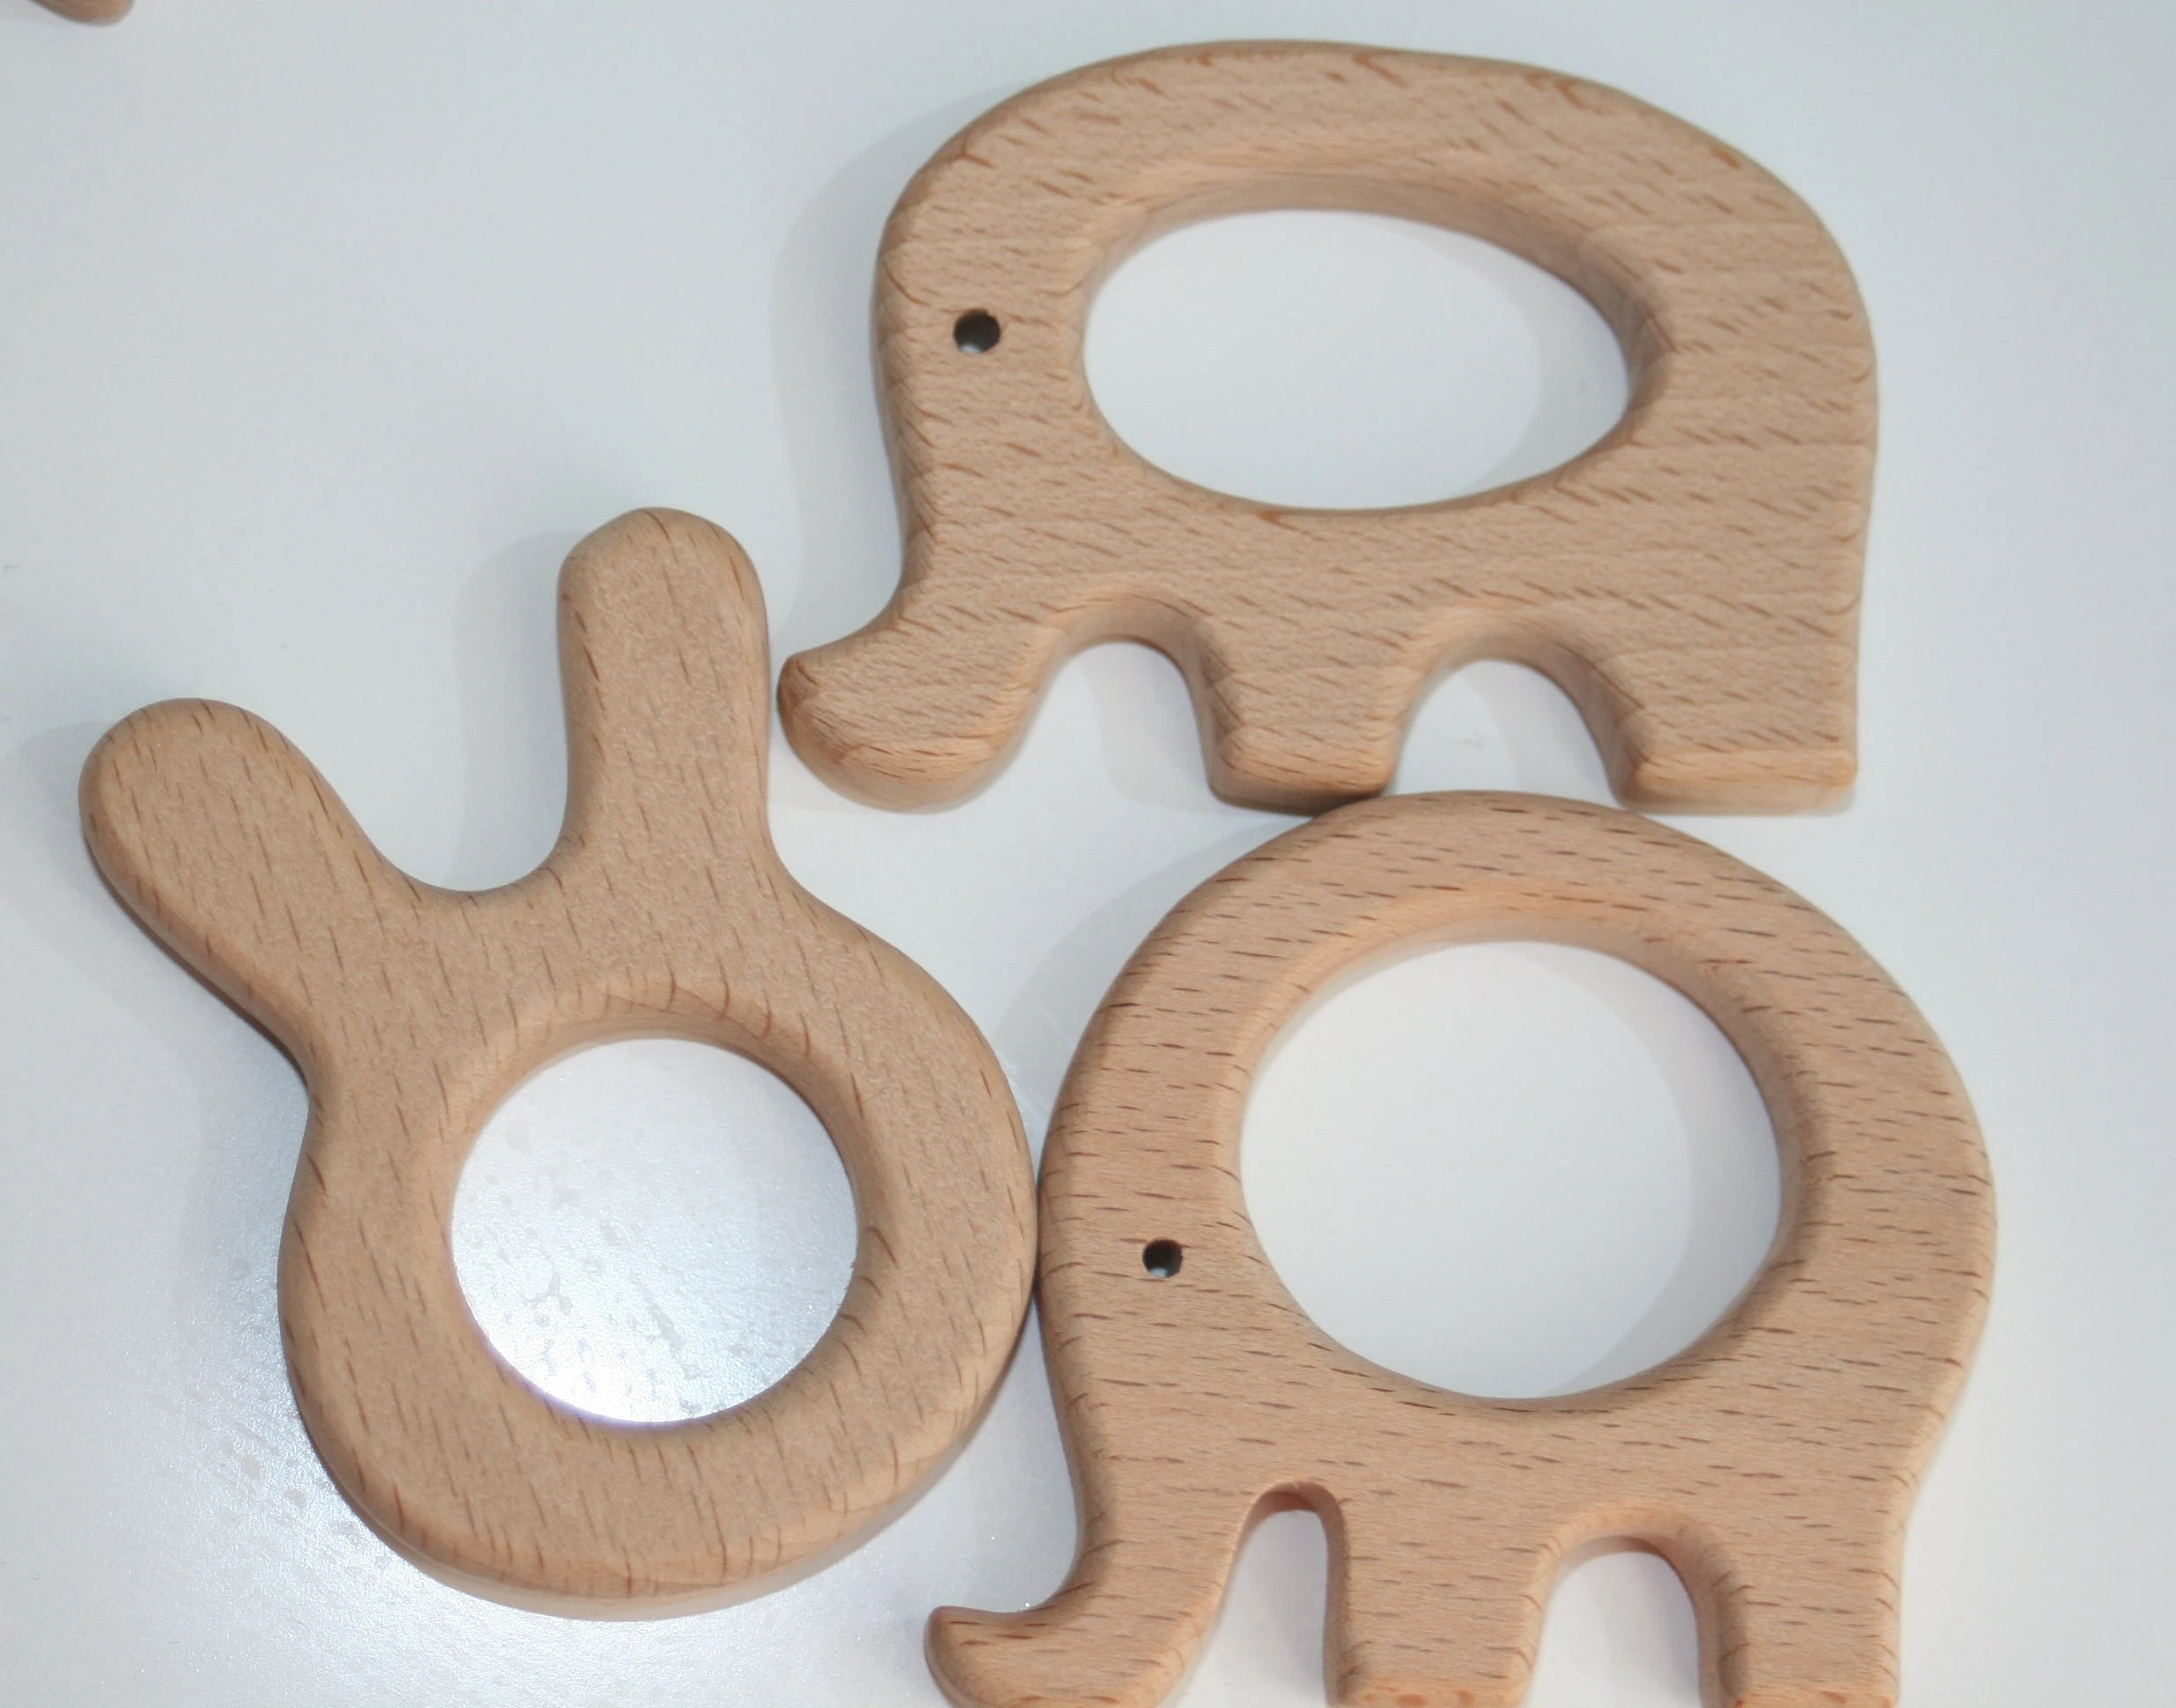 Wooden teethers teether shapes animals organic wood natural image 2